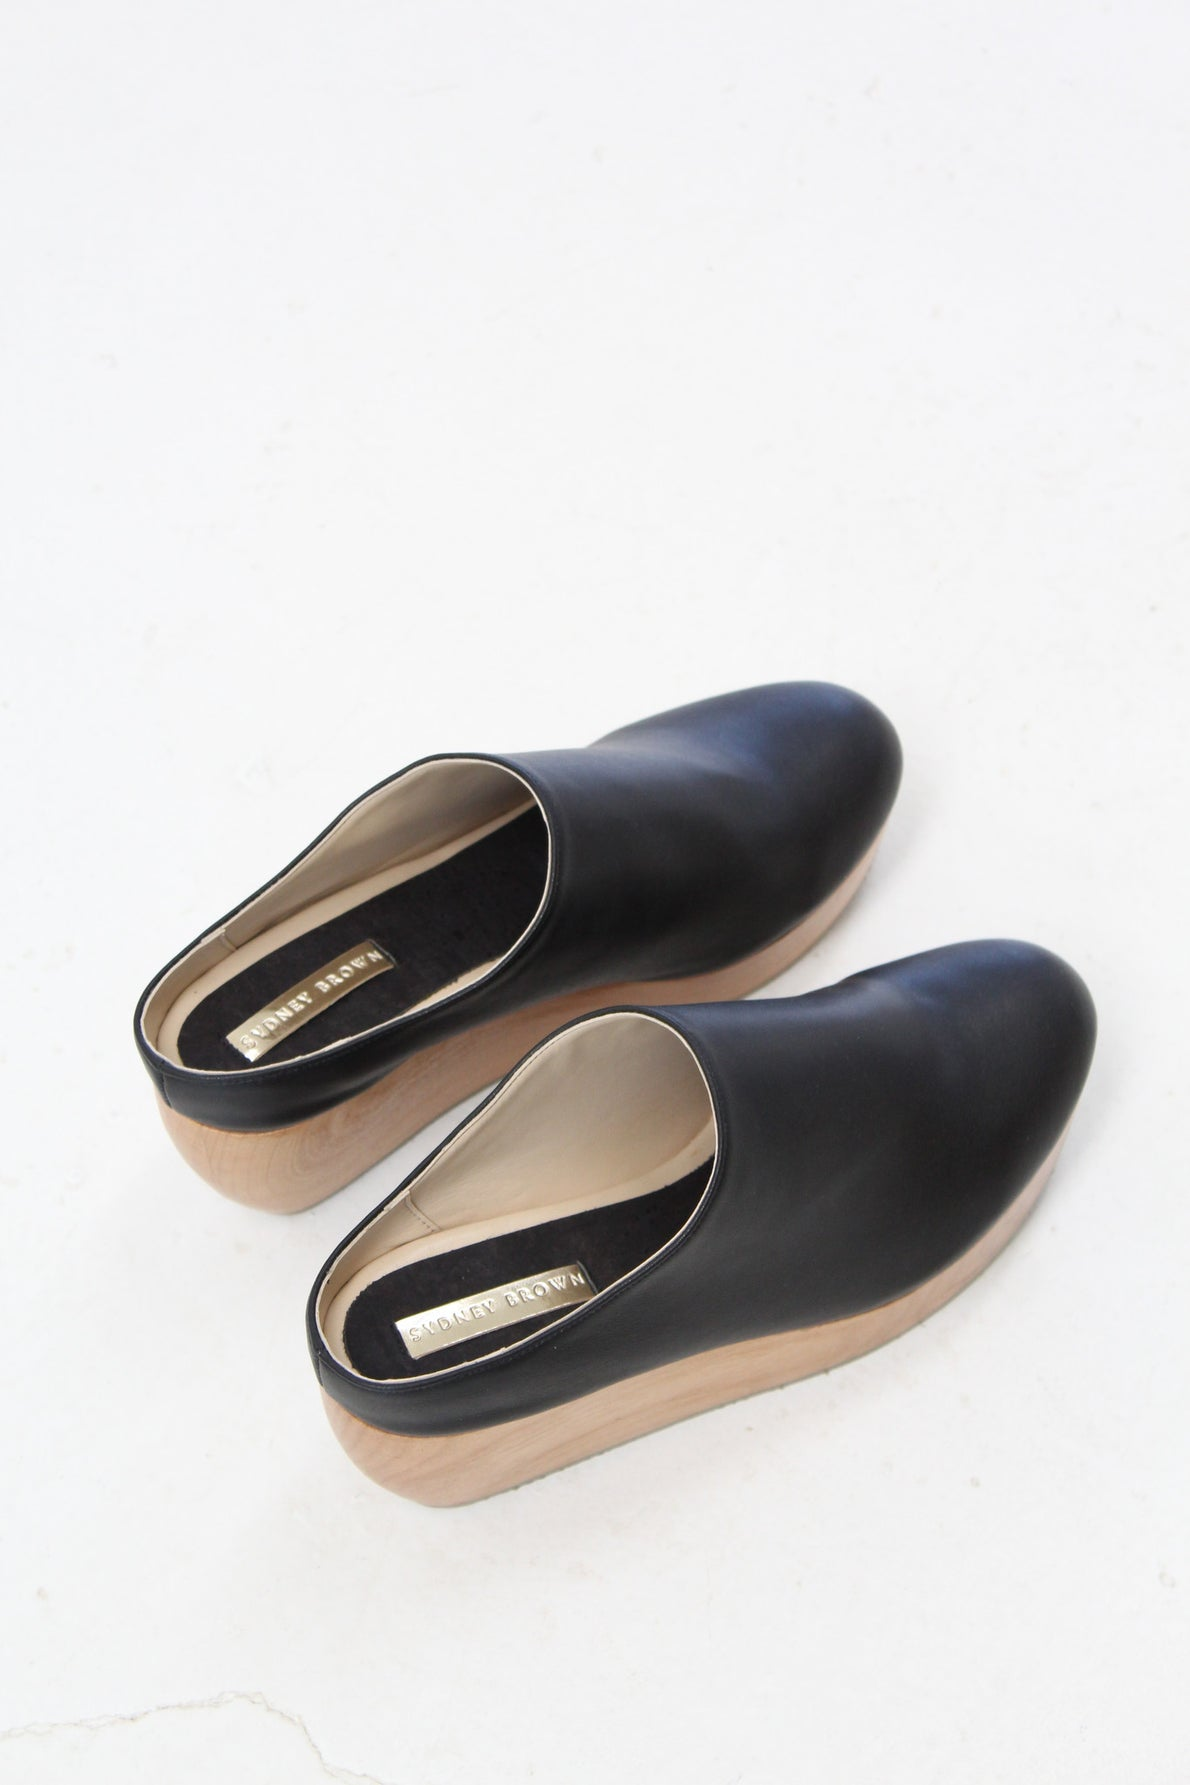 Sydney Brown Clog Black